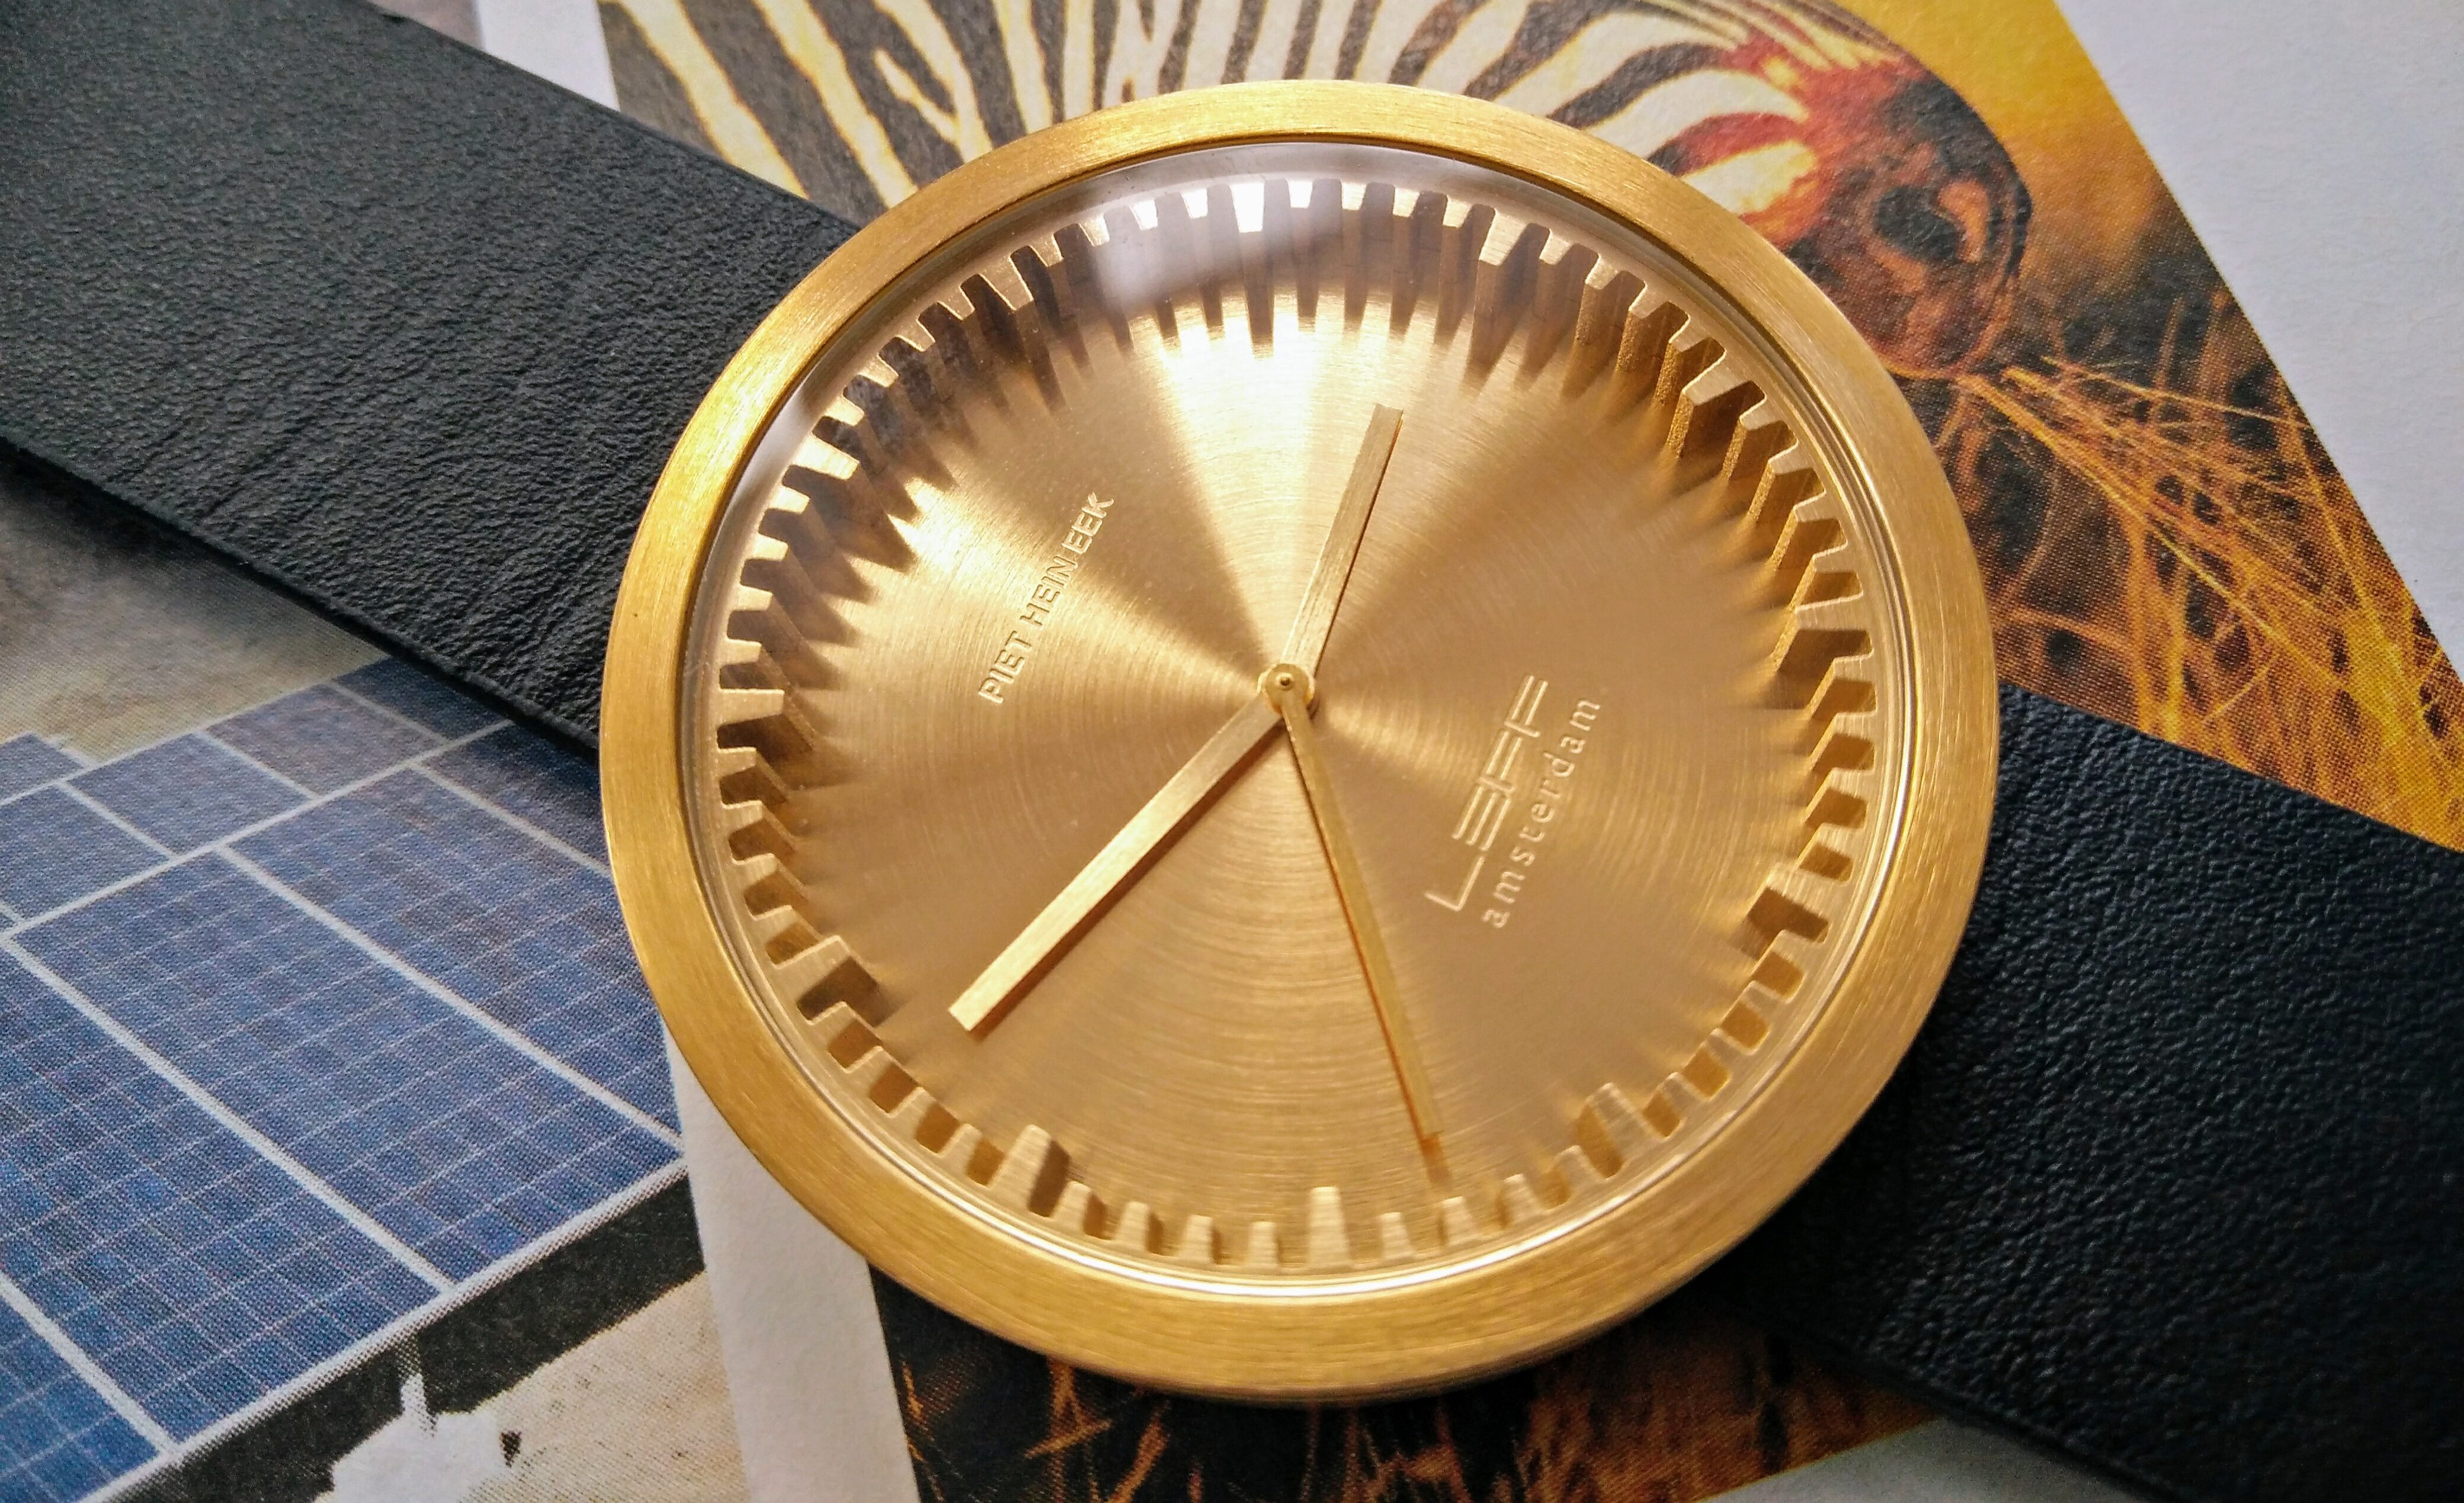 Leff amsterdam watches, Leff amsterdam watch review, amsterdam watches